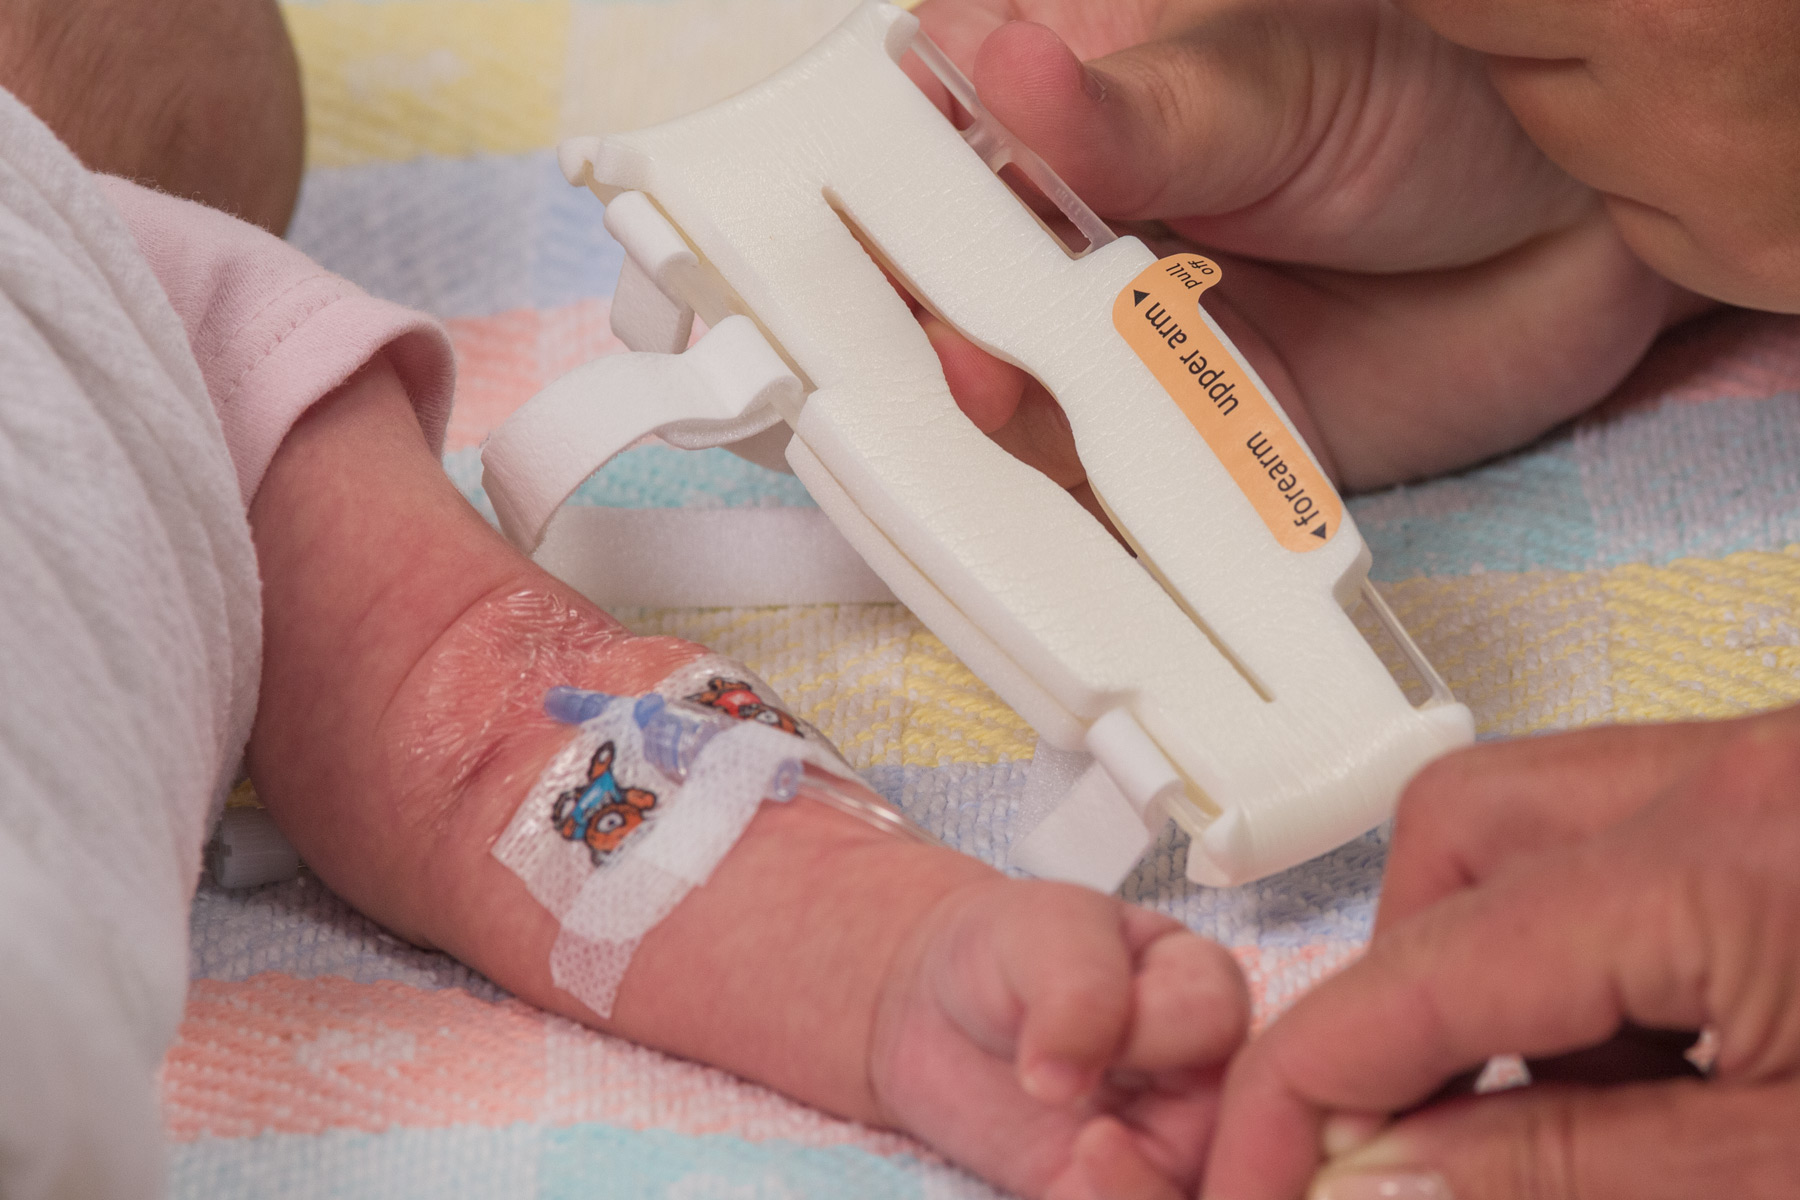 Orientation Label on size Small TLC Elbow Splint for infants